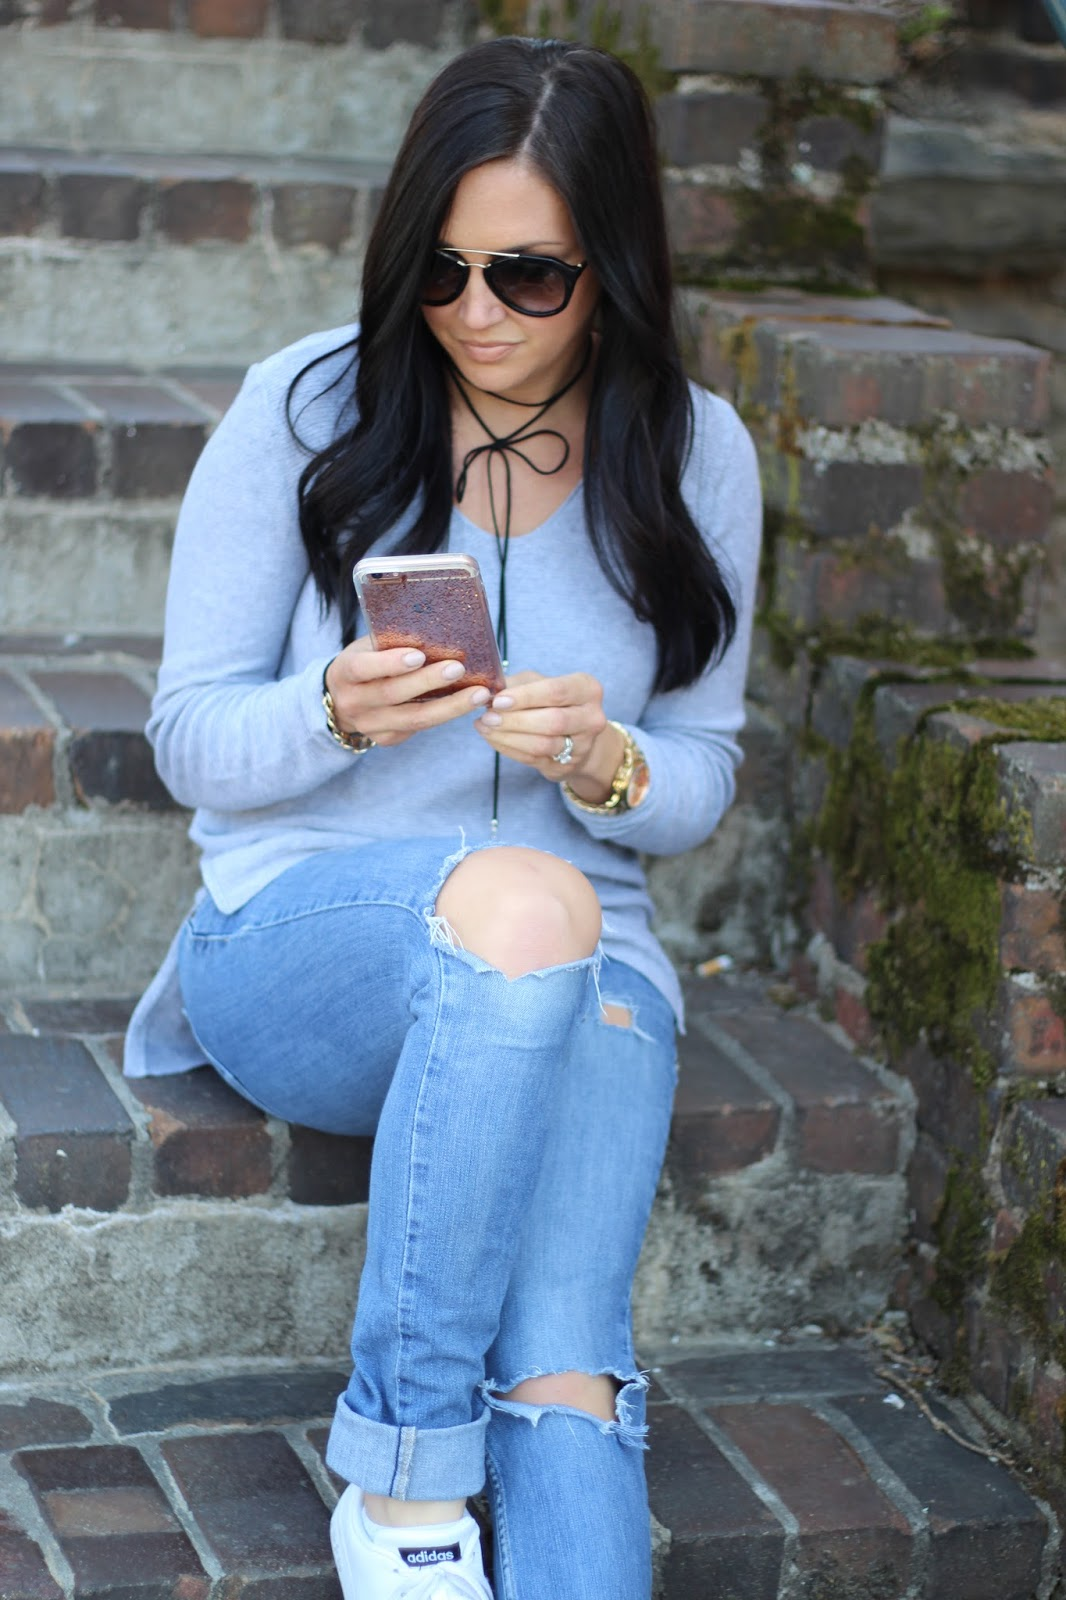 Adidas clean, Kate Spade case, distressed casual look via Stilettos and Diapers